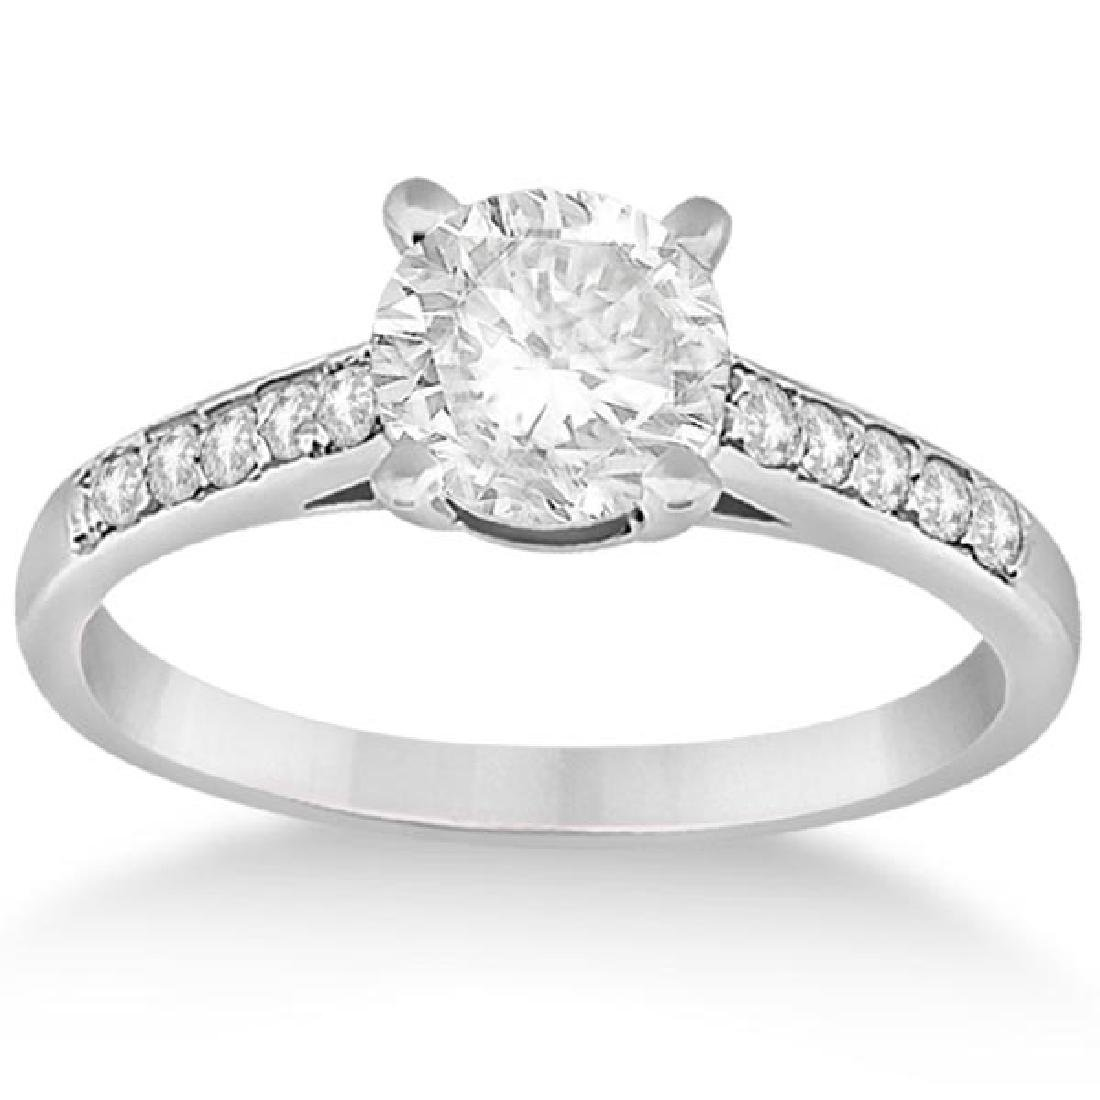 Cathedral Pave Diamond Engagement Ring Setting 14k Whit